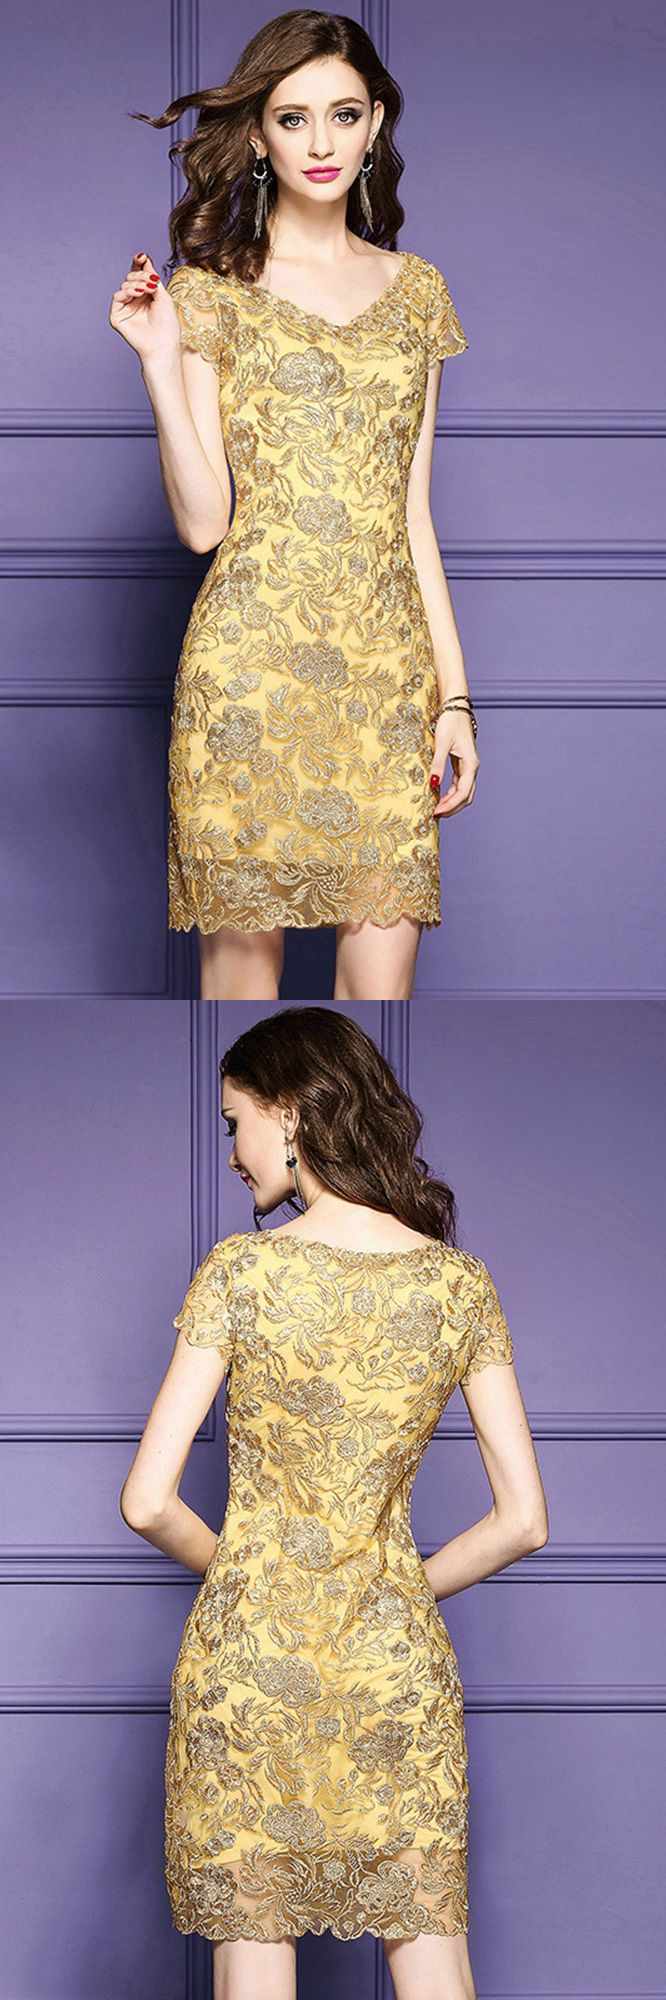 Luxury dresses for wedding guest  Cocktail Dresses Luxury Gold Embroidery Sheath Party Dress For